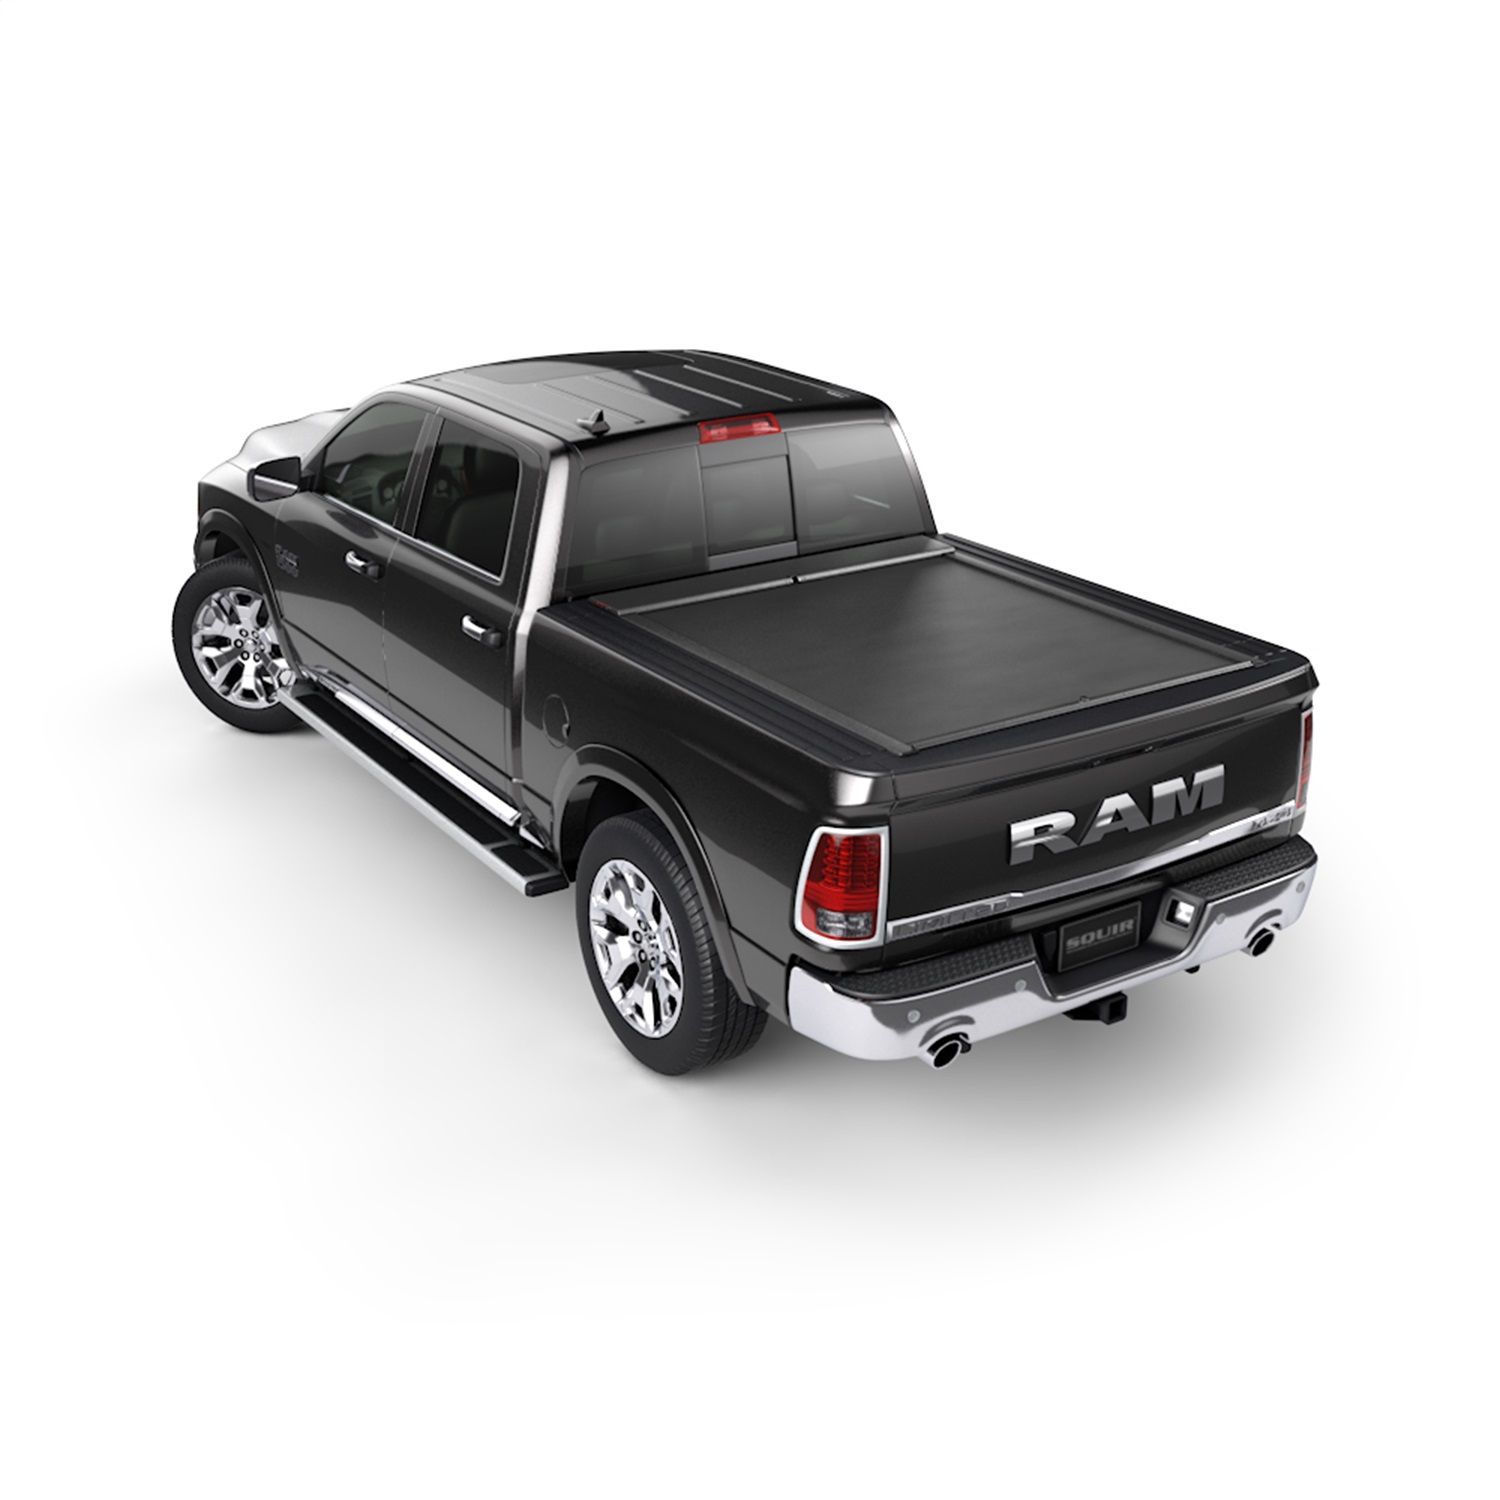 Roll-N-Lockr M-Series Truck Bed Cover, Manual Retractable, For Use w/Rambox Cargo Management System Only